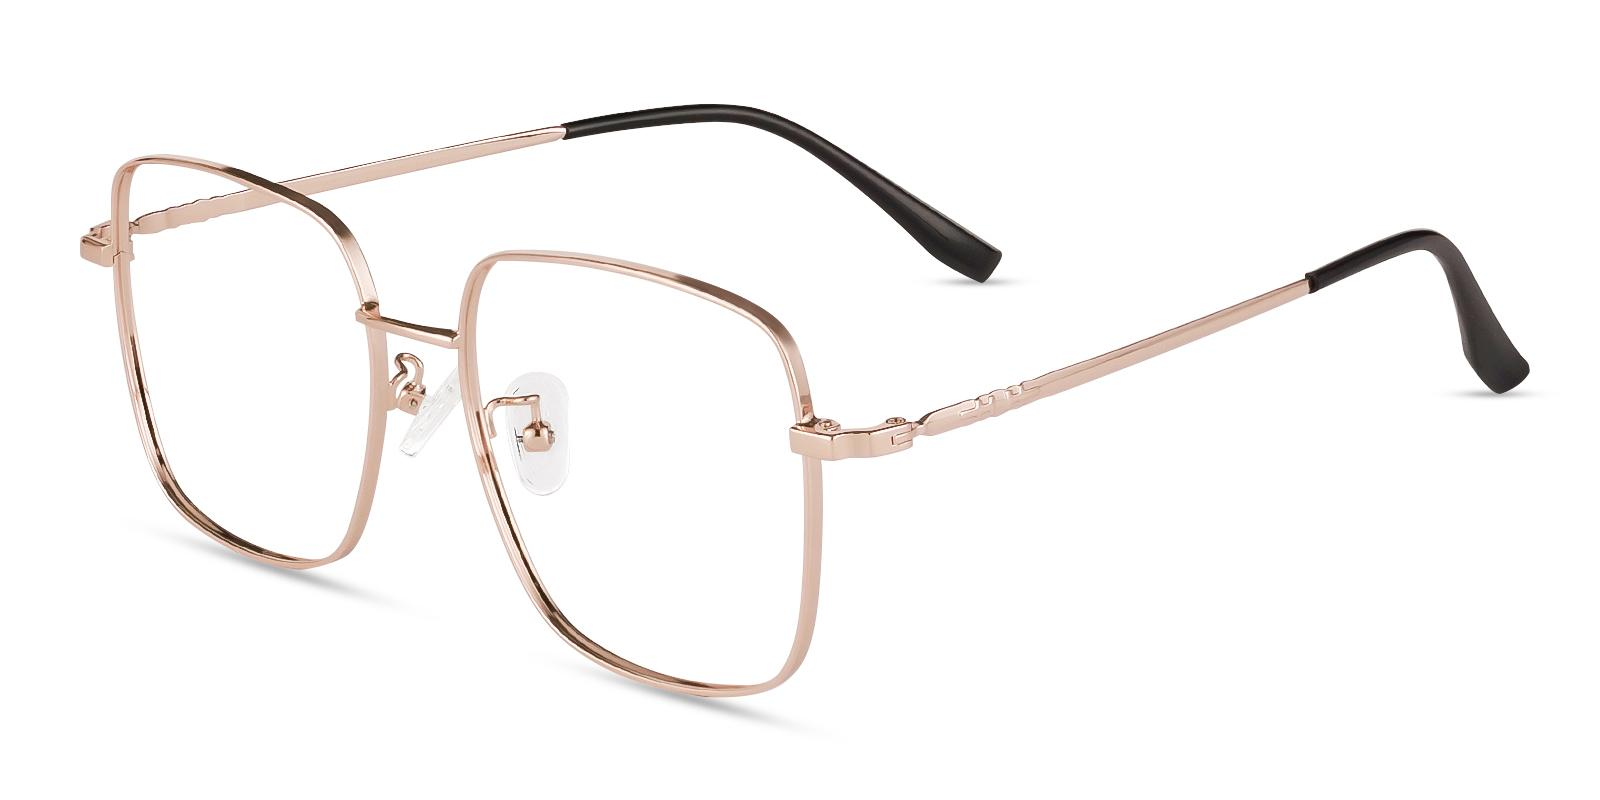 Rolita Gold Metal Eyeglasses , Fashion , NosePads Frames from ABBE Glasses